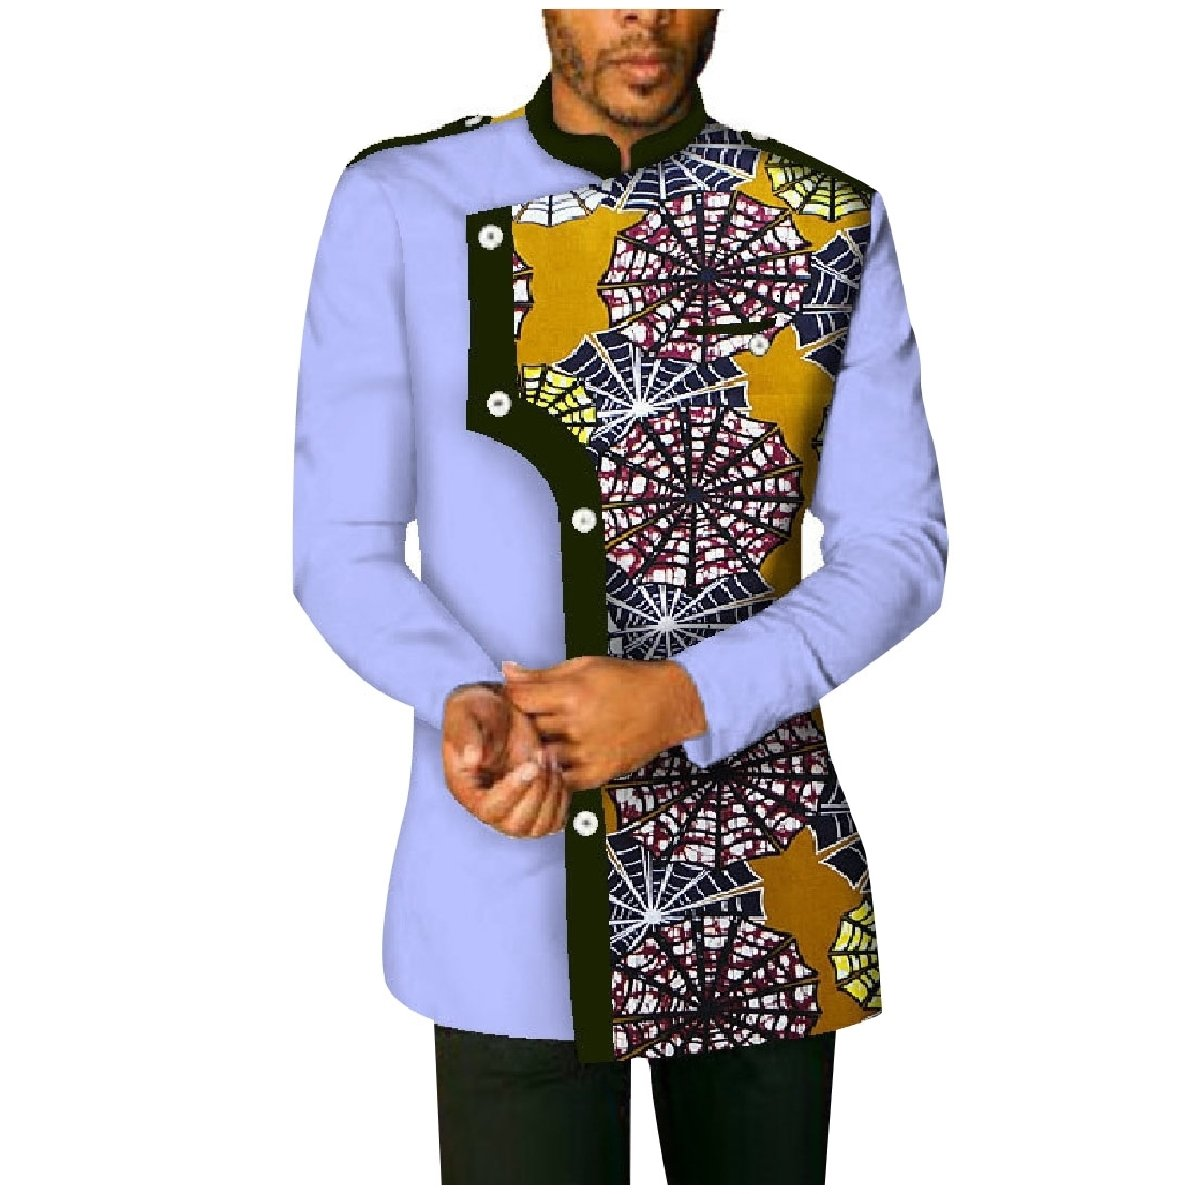 YUNY Mens Plus-Size Cotton African Printed Long-Sleeve Western Shirt Yellowish Brown XL